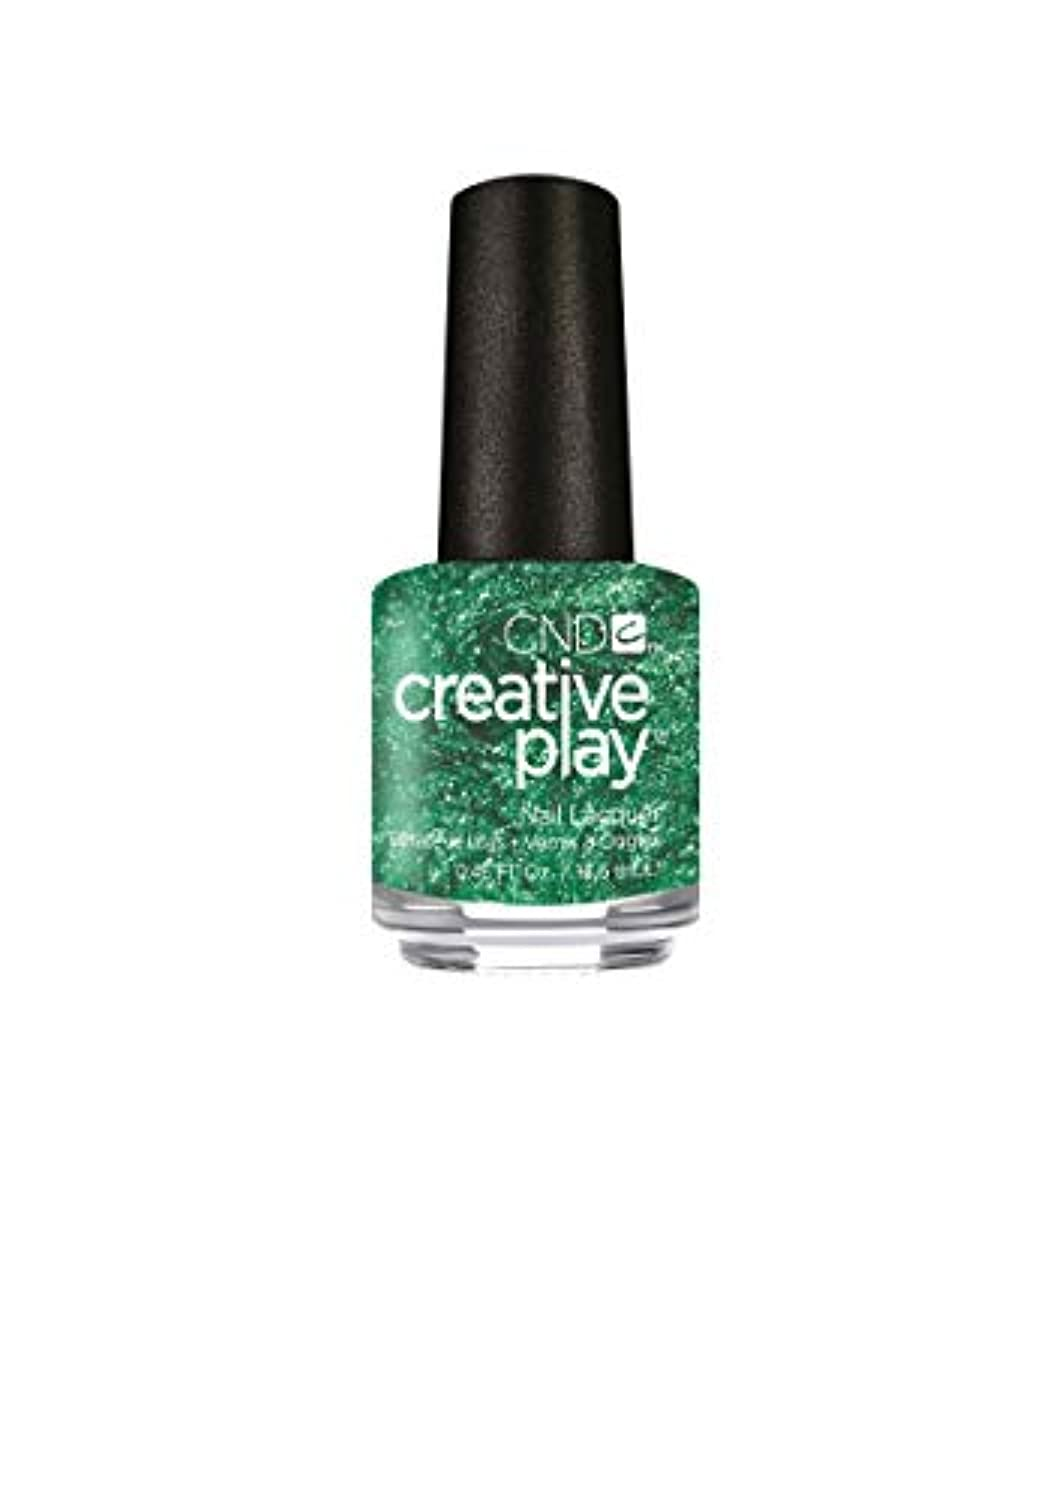 CND Creative Play Lacquer - Shamrock on You - 0.46oz / 13.6ml